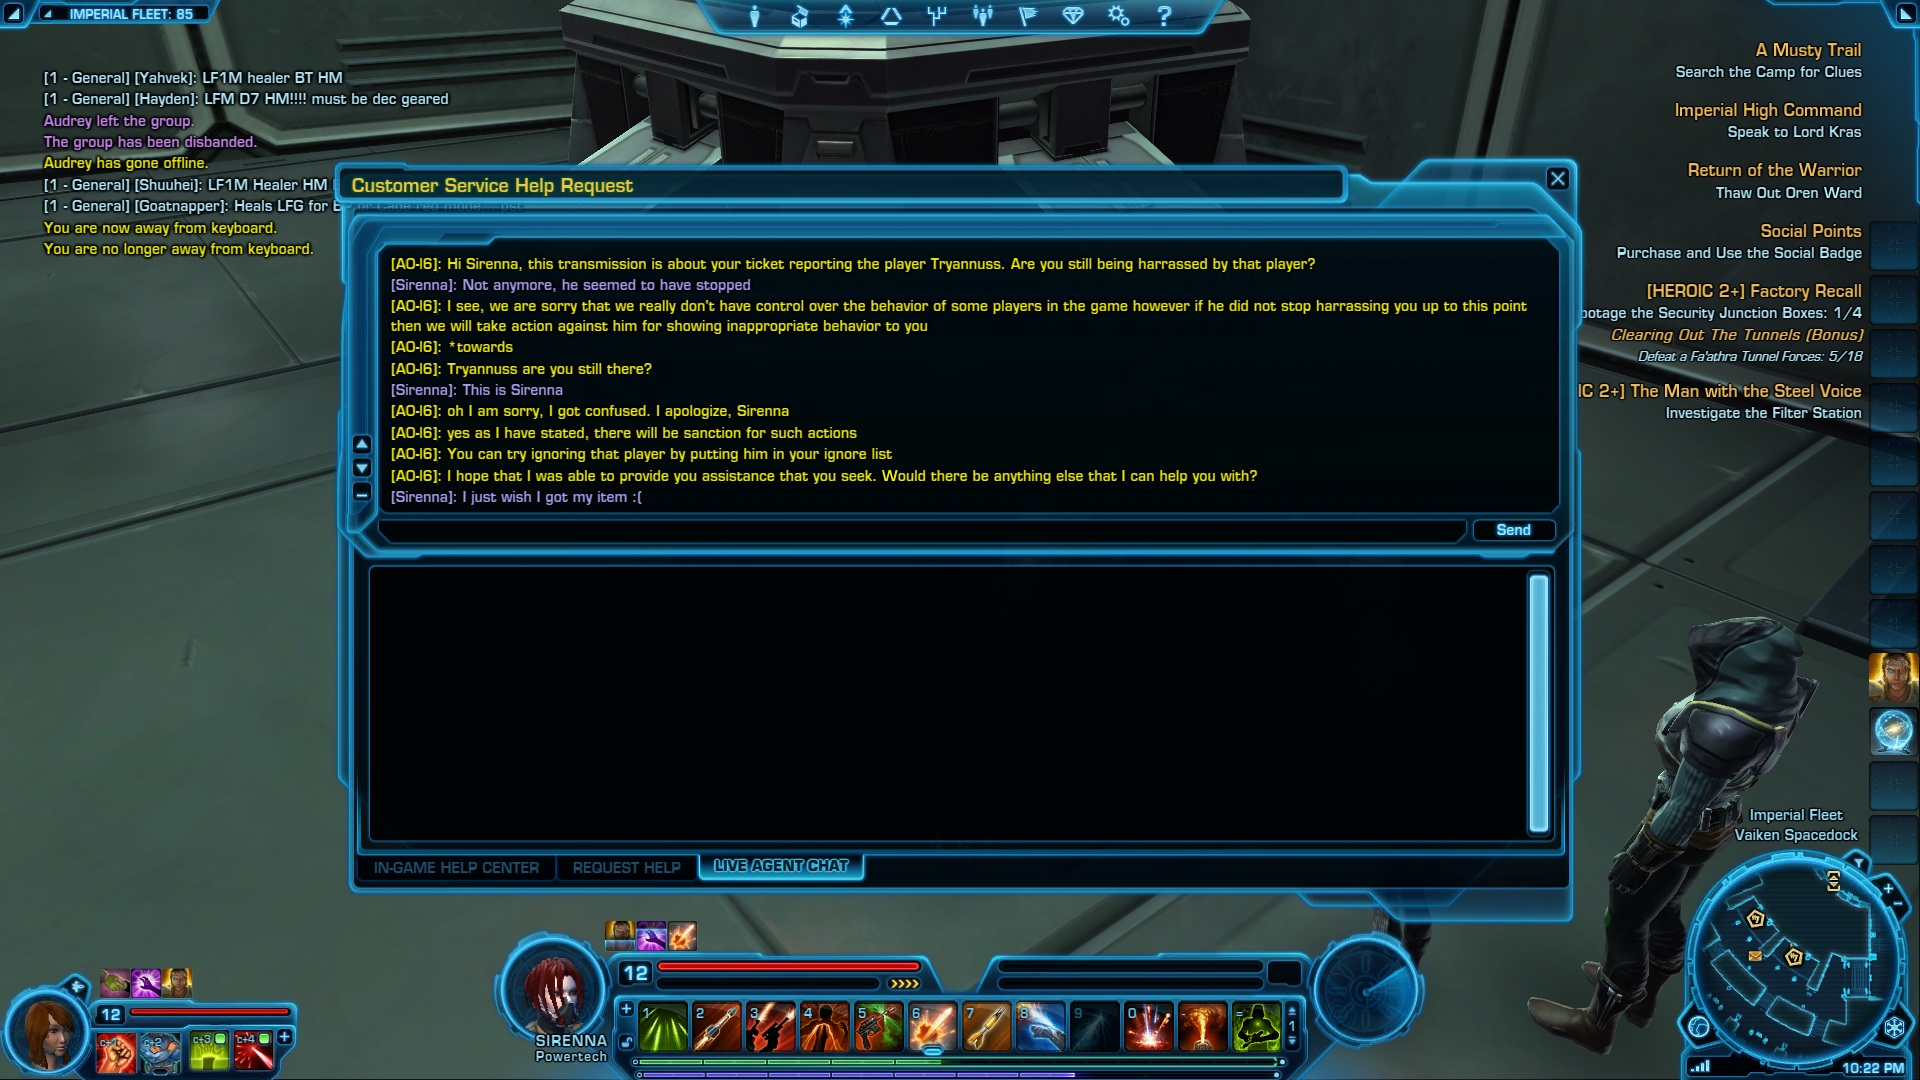 siya games back were return people that kotfe expansion which favorites said follow there going companions would keep your money push what better than star month months their crying republic random questiondiscussion thread favorite companion werent they hard wars just believe because story wasnt from didnt